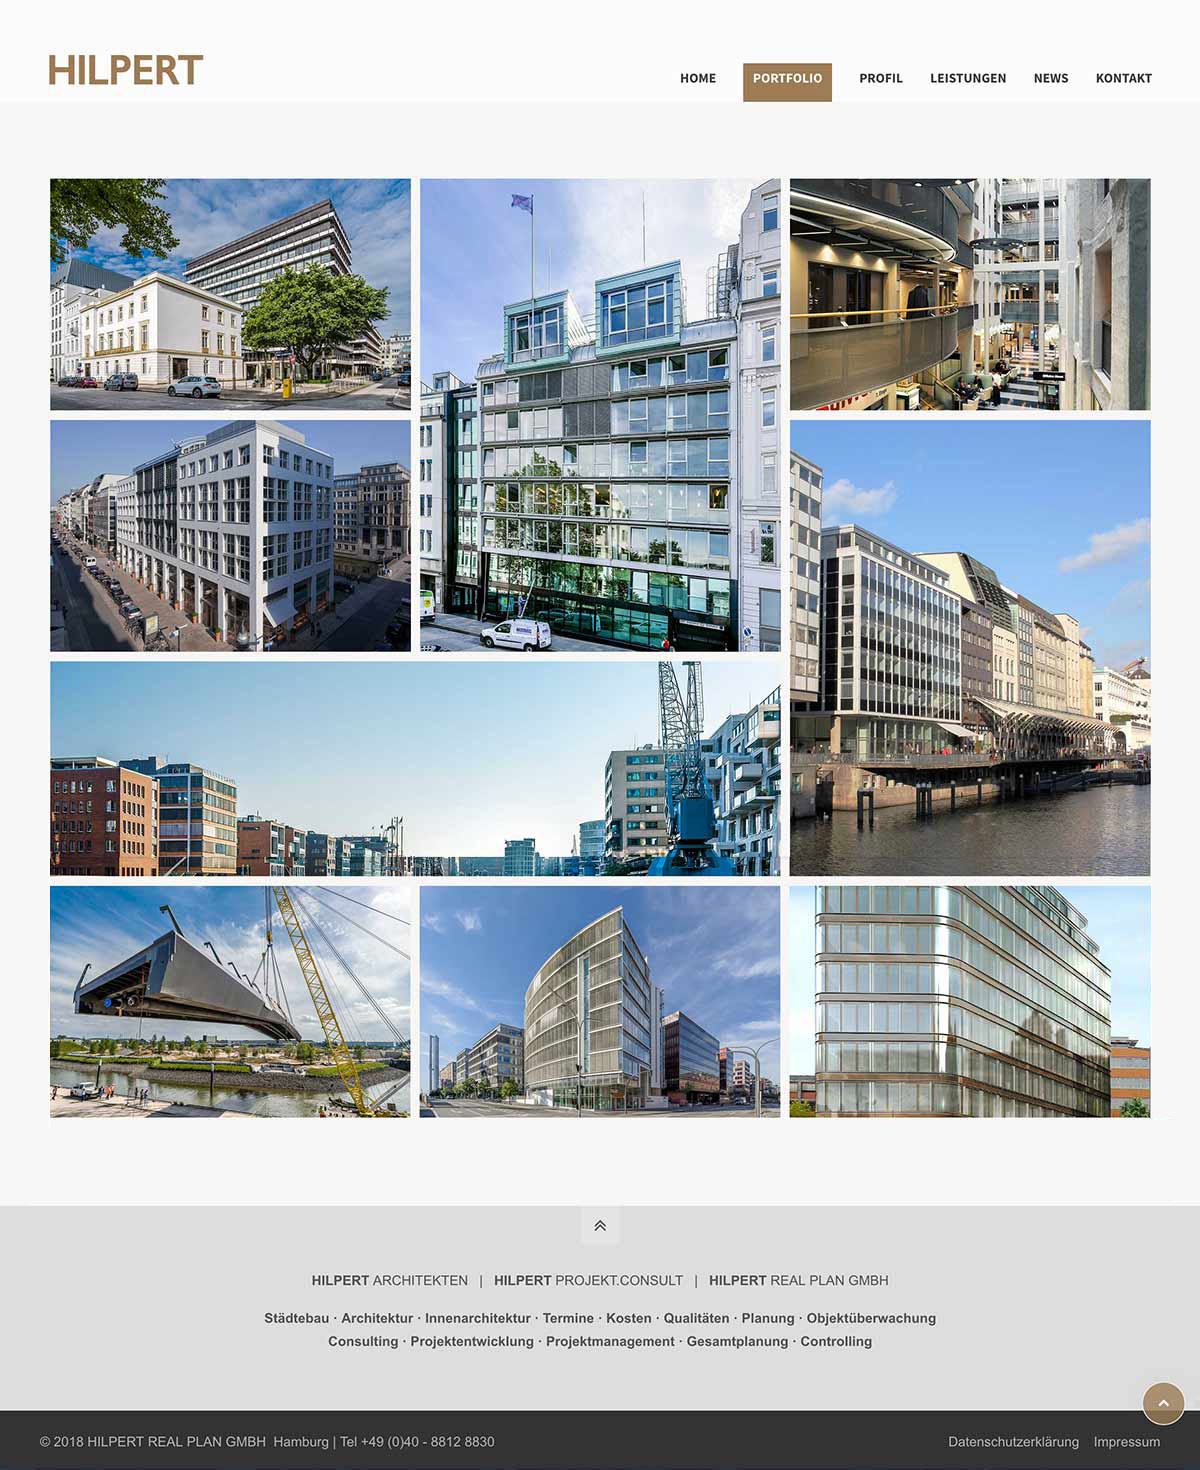 webdesign_lab-01_fuer_architekt_hilpert01.jpg